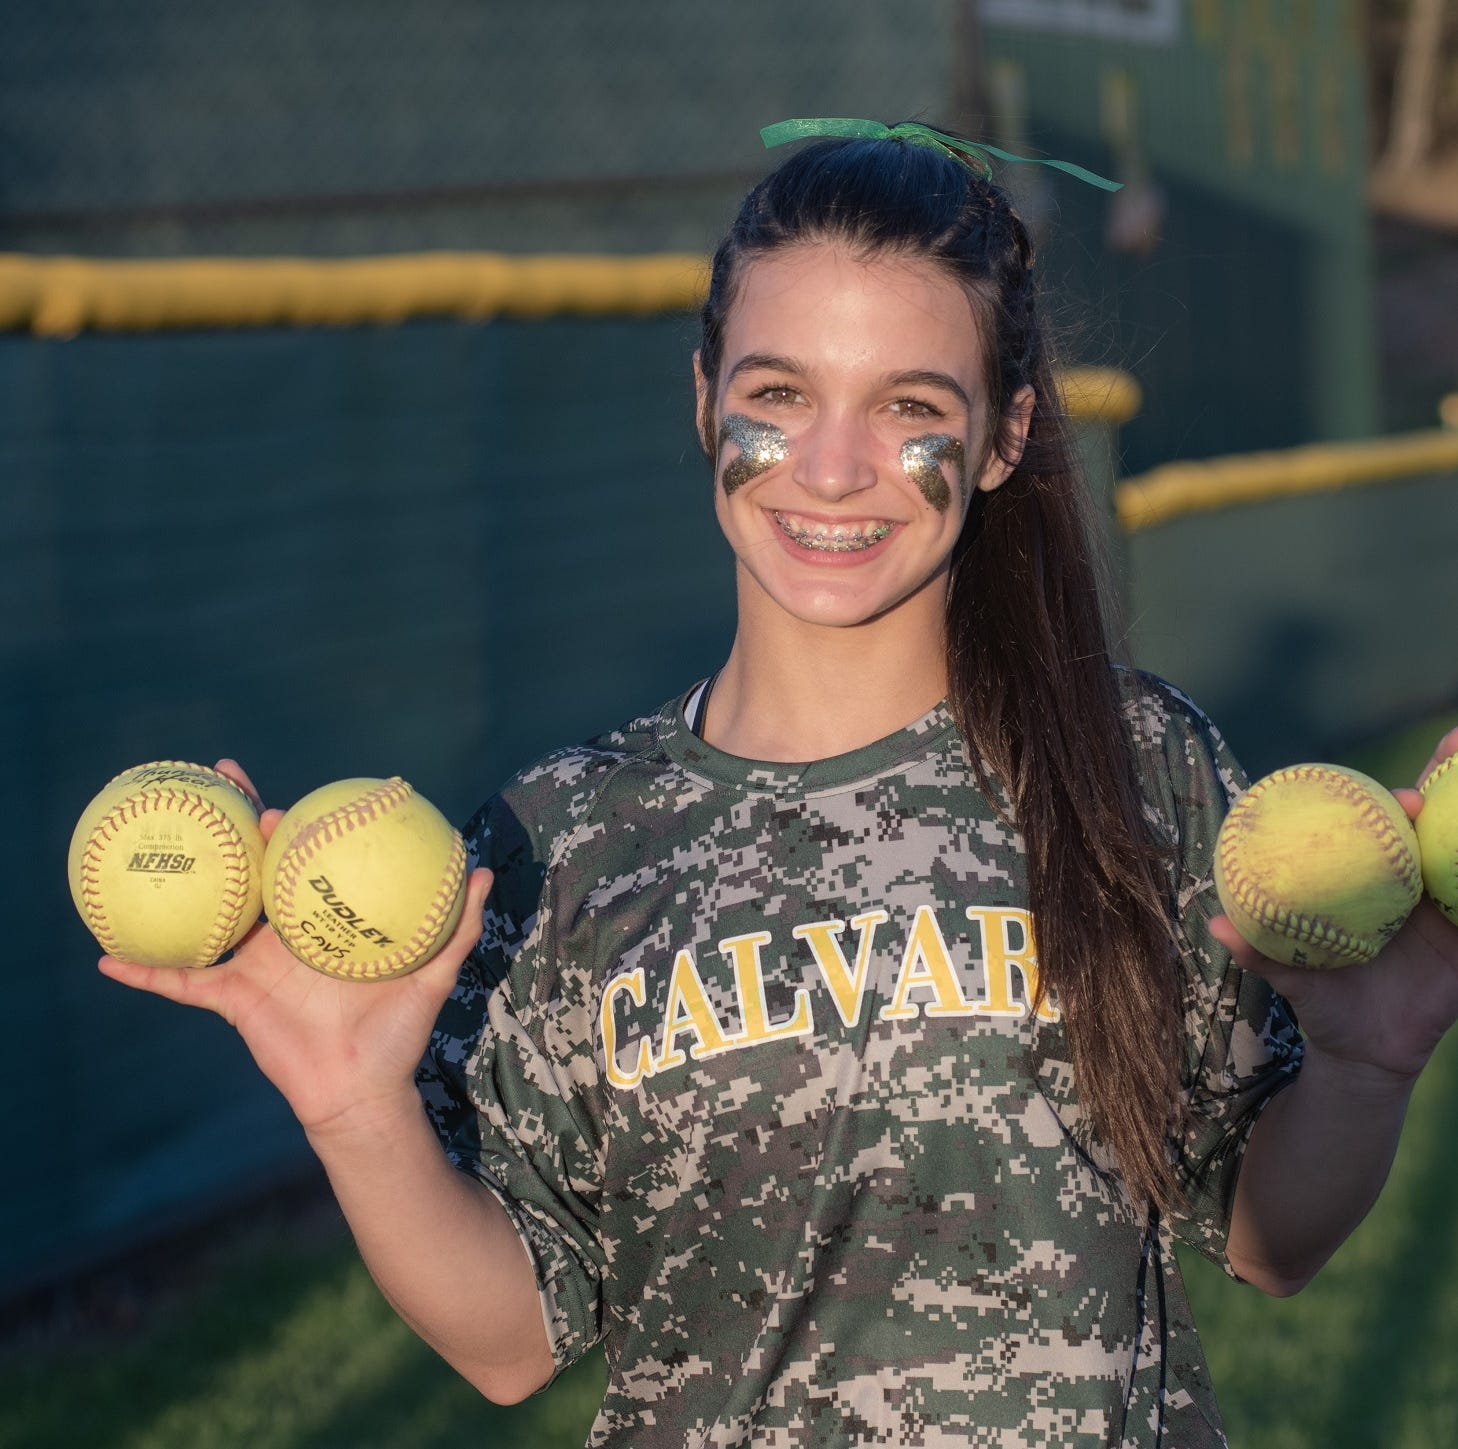 Softball phenom: Calvary youngster sends balls downtown